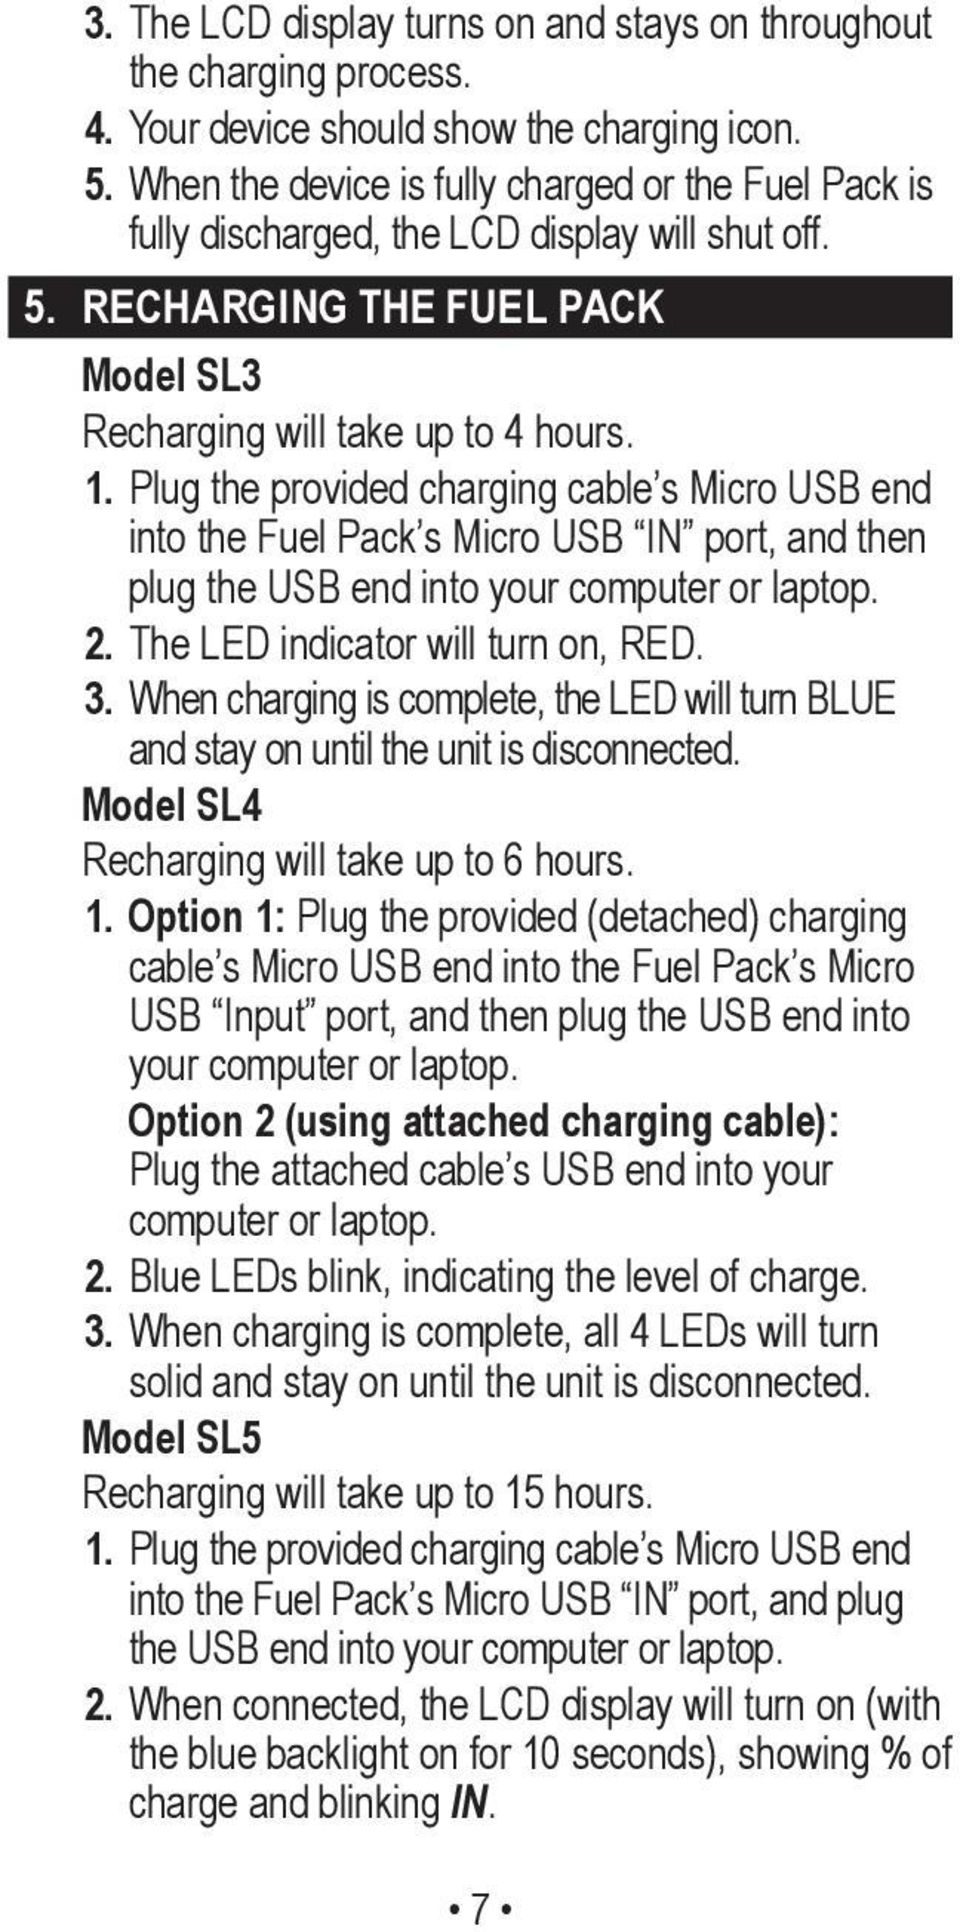 Plug the provided charging cable s Micro USB end into the Fuel Pack s Micro USB IN port, and then plug the USB end into your computer or laptop. 2. The LED indicator will turn on, RED. 3.